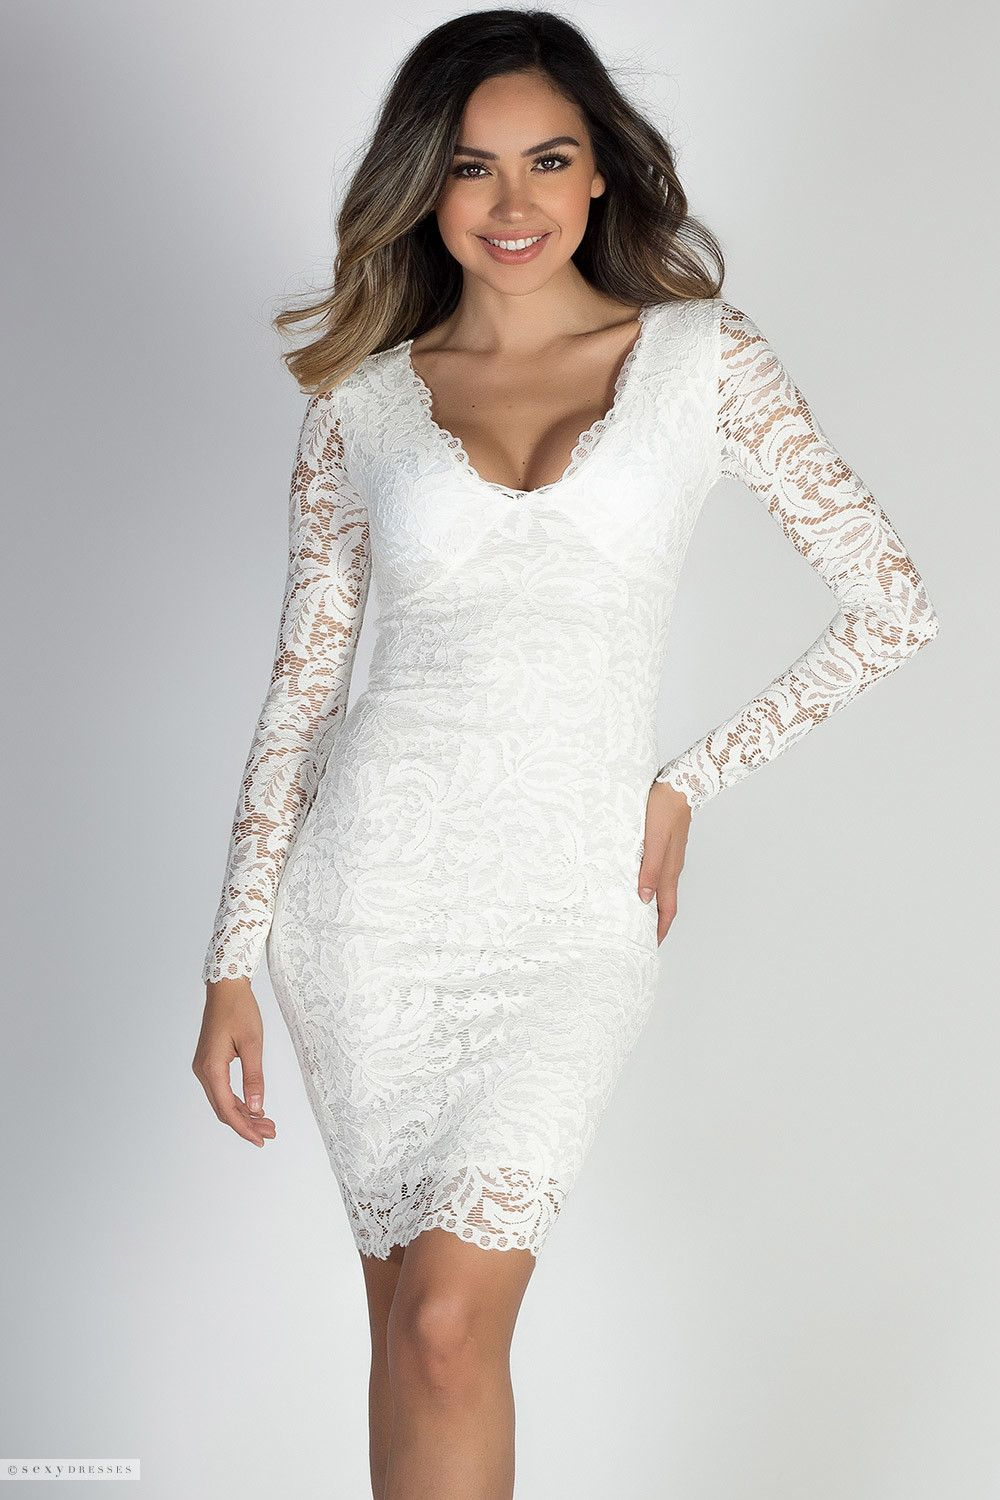 V Neck Fitted Long Sleeve White Lace Cocktail Dress Cocktail Dress Lace Lace Dress White Long Sleeve [ 1500 x 1000 Pixel ]